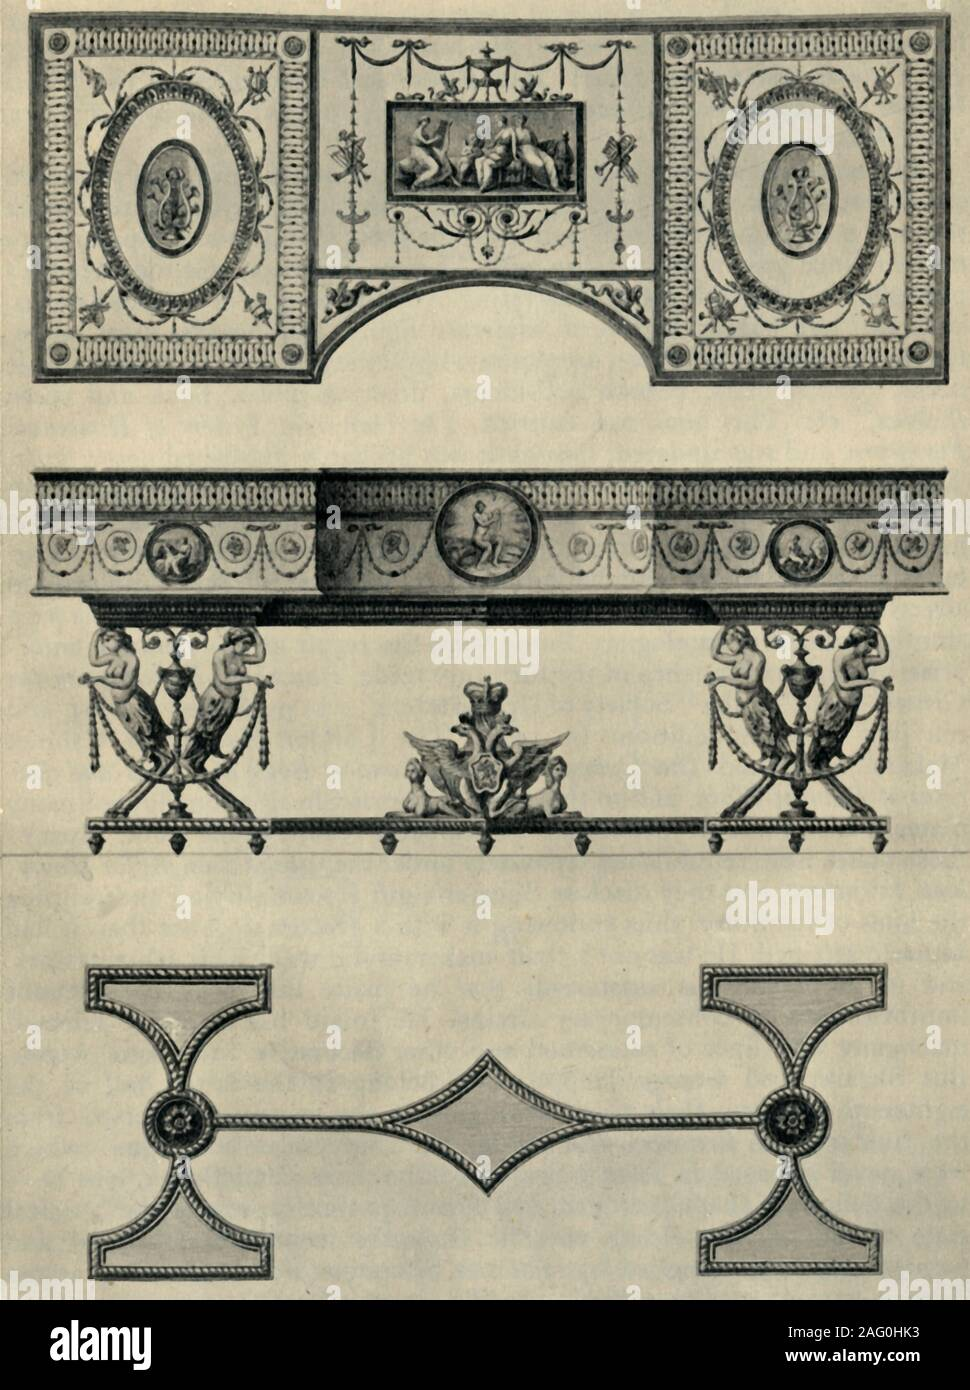 """Design for a harpsichord by Robert Adam, 1774, (1946). 'Executed in London with different coloured woods for the Empress of Russia', Catherine the Great. Plan and side elevation of a musical instrument with marquetry decoration including the double-headed imperial Russian eagle. From """"British Furniture Makers', by John Gloag. [Collins, London, 1946] Stock Photo"""